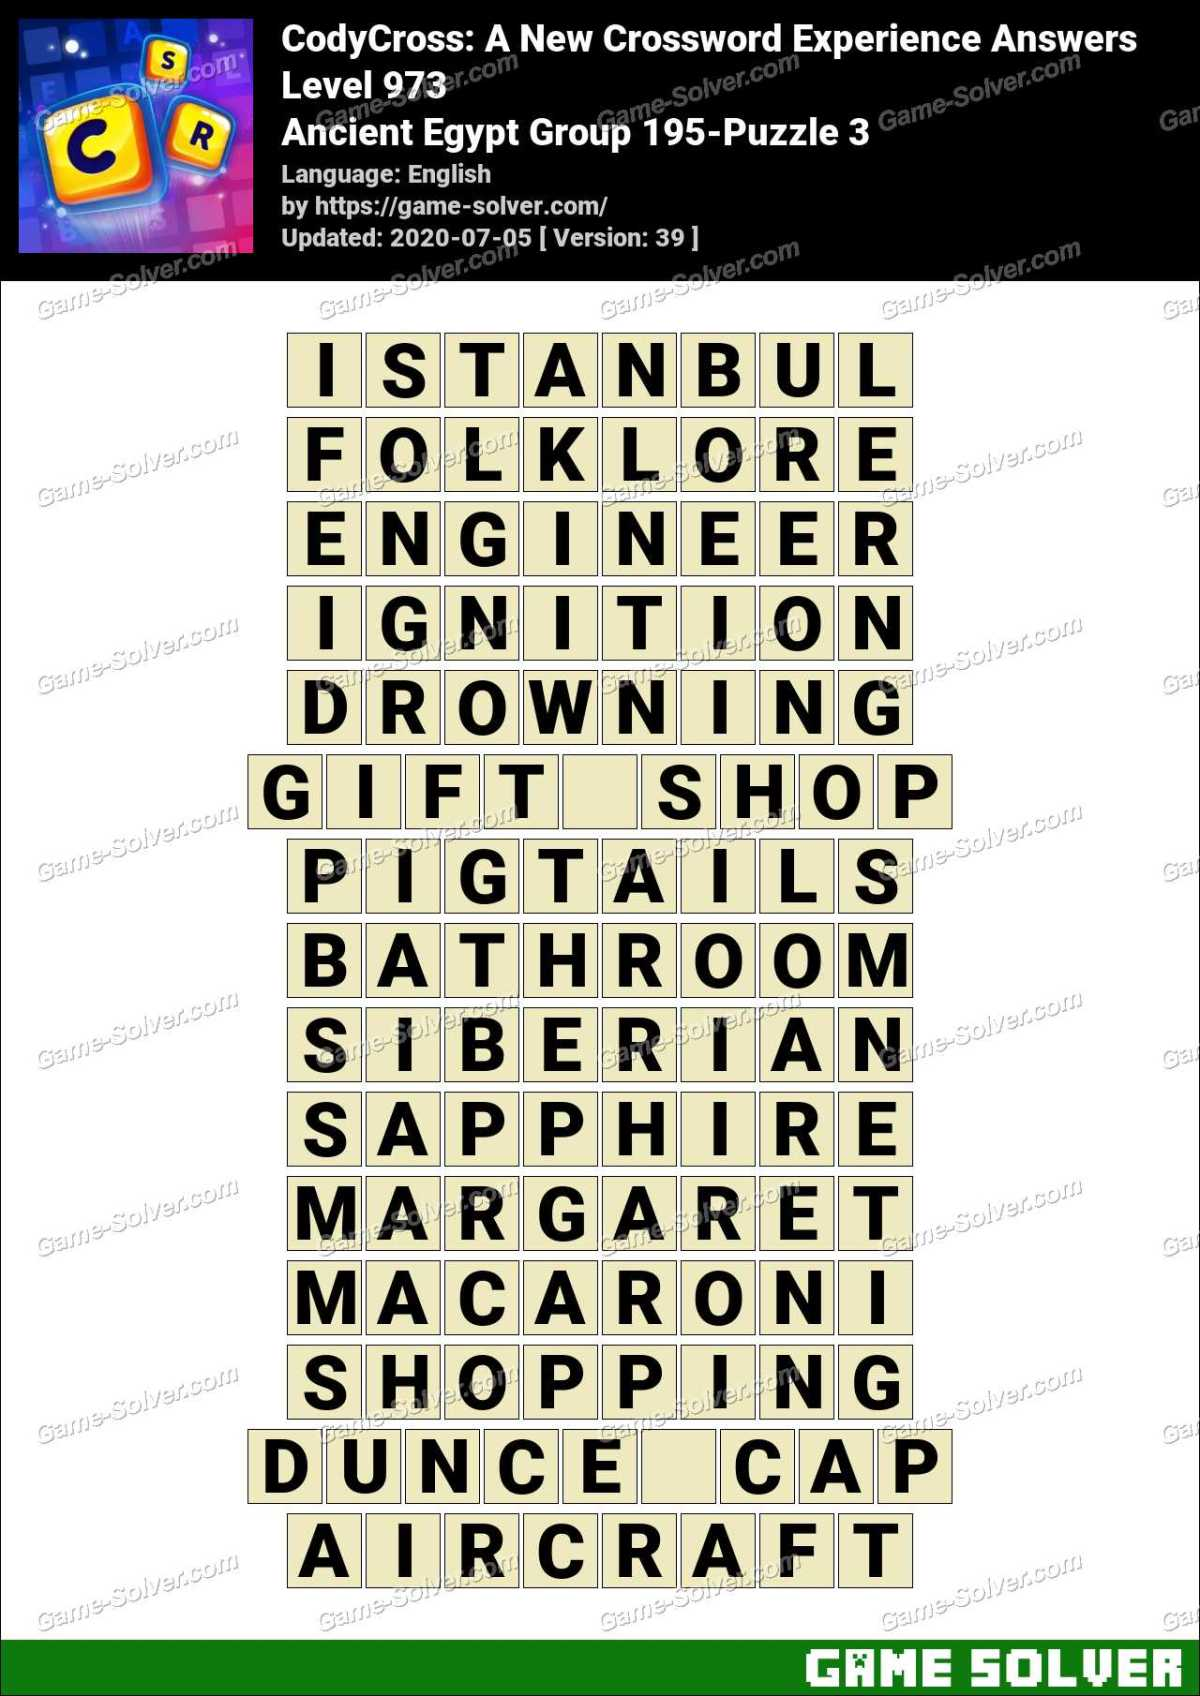 CodyCross Ancient Egypt Group 195-Puzzle 3 Answers